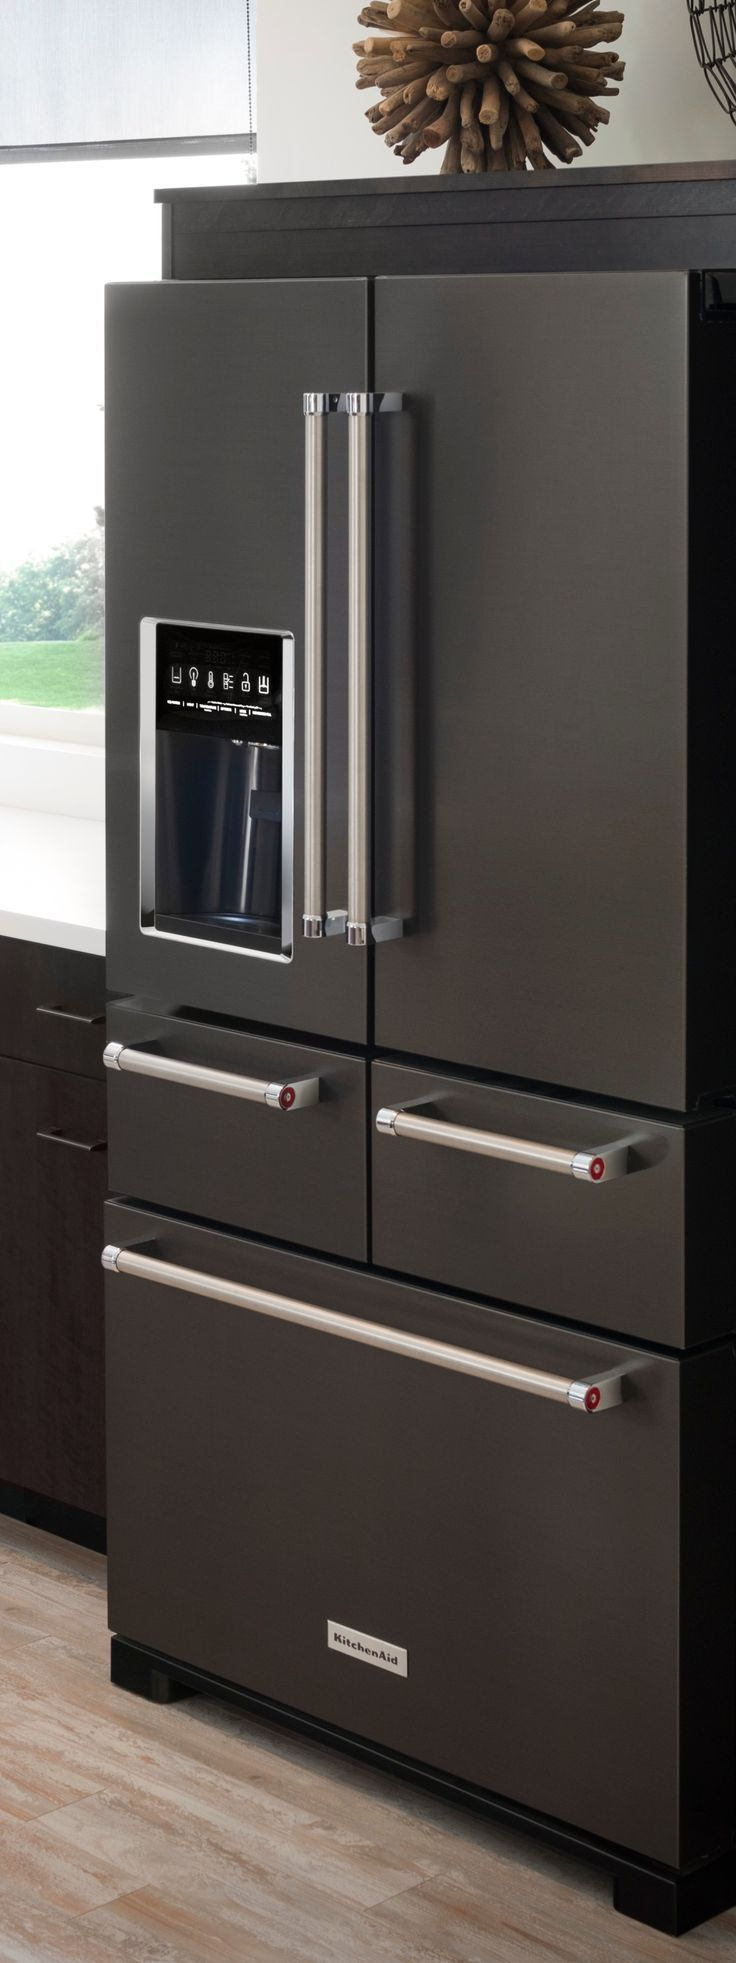 Lebensmittelschrank Black Stainless Steel Appliances Give Your Kitchen A Bold Sleek